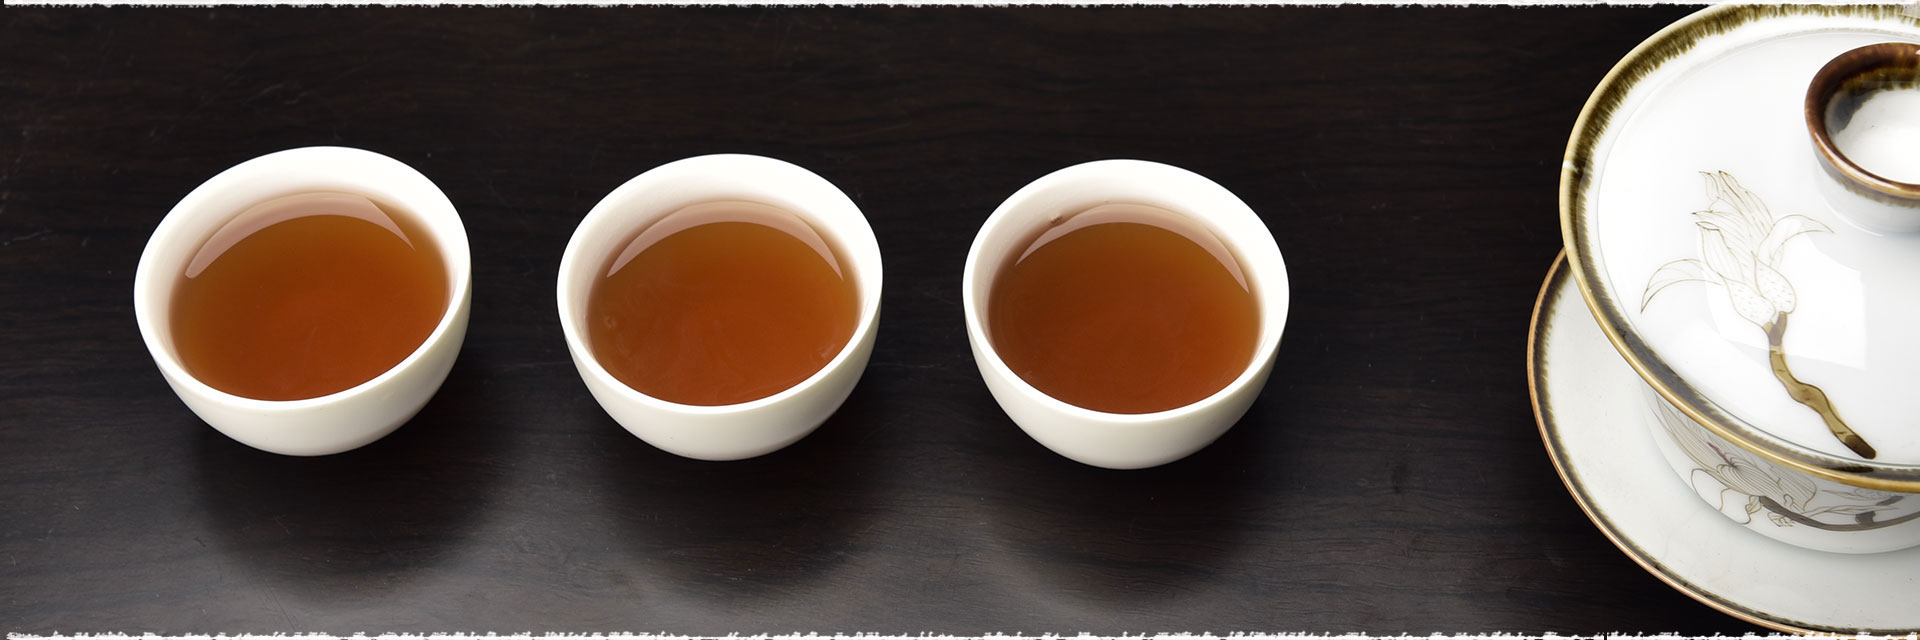 Differences Between Da Hong Pao Oolong, Shui Xian Oolong and Rou Gui Oolong